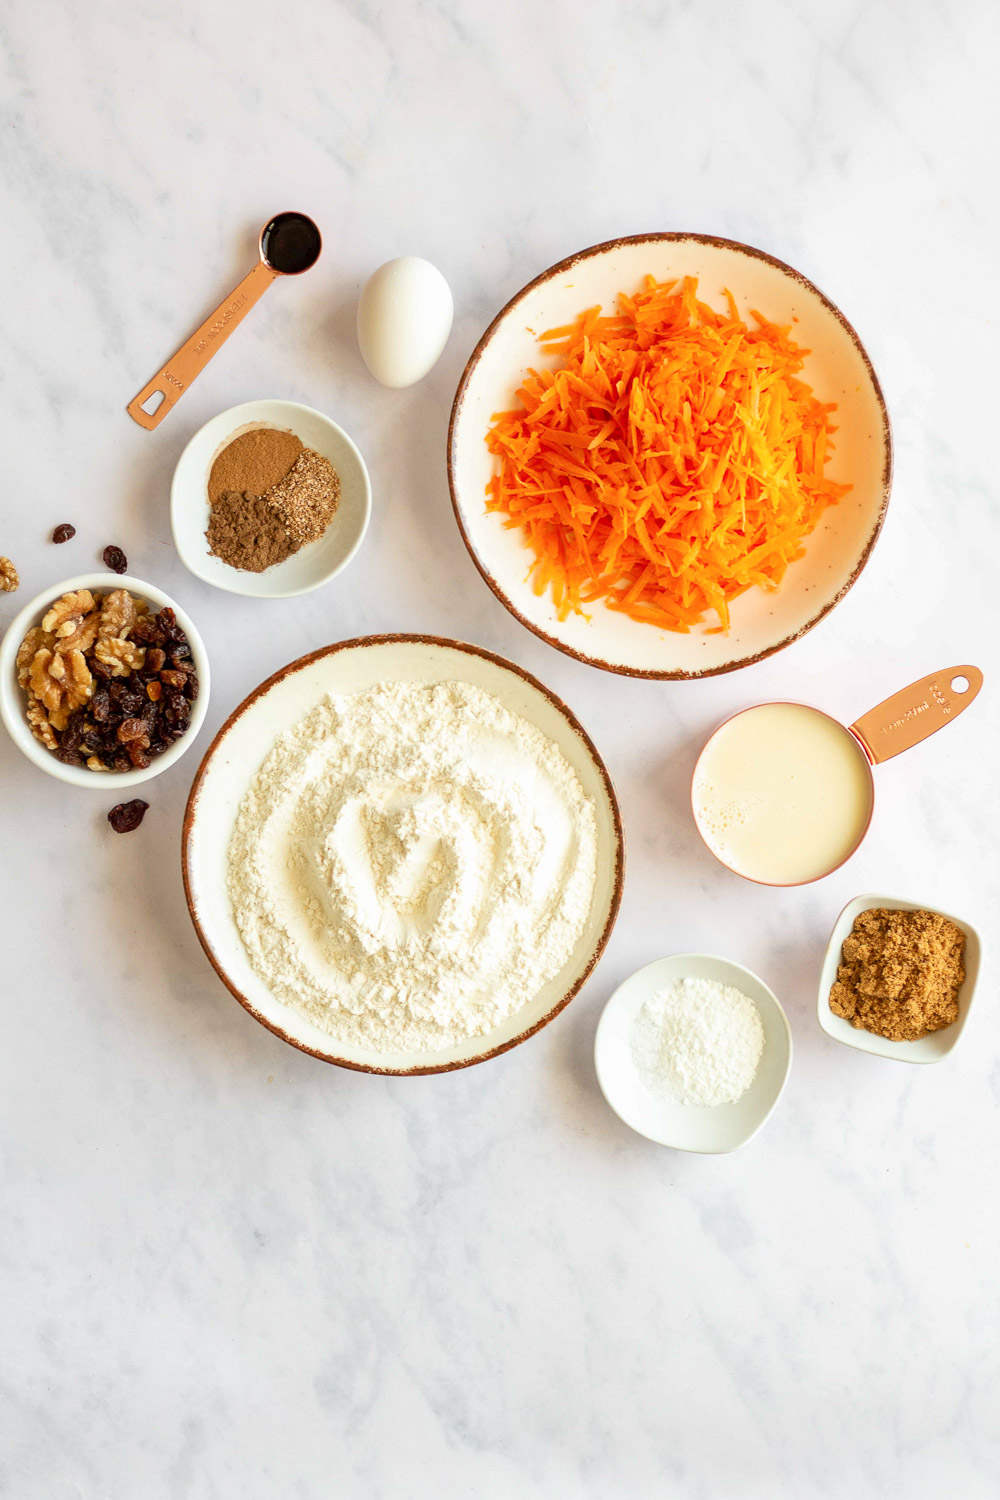 ingredients to make whole wheat carrot cake pancakes